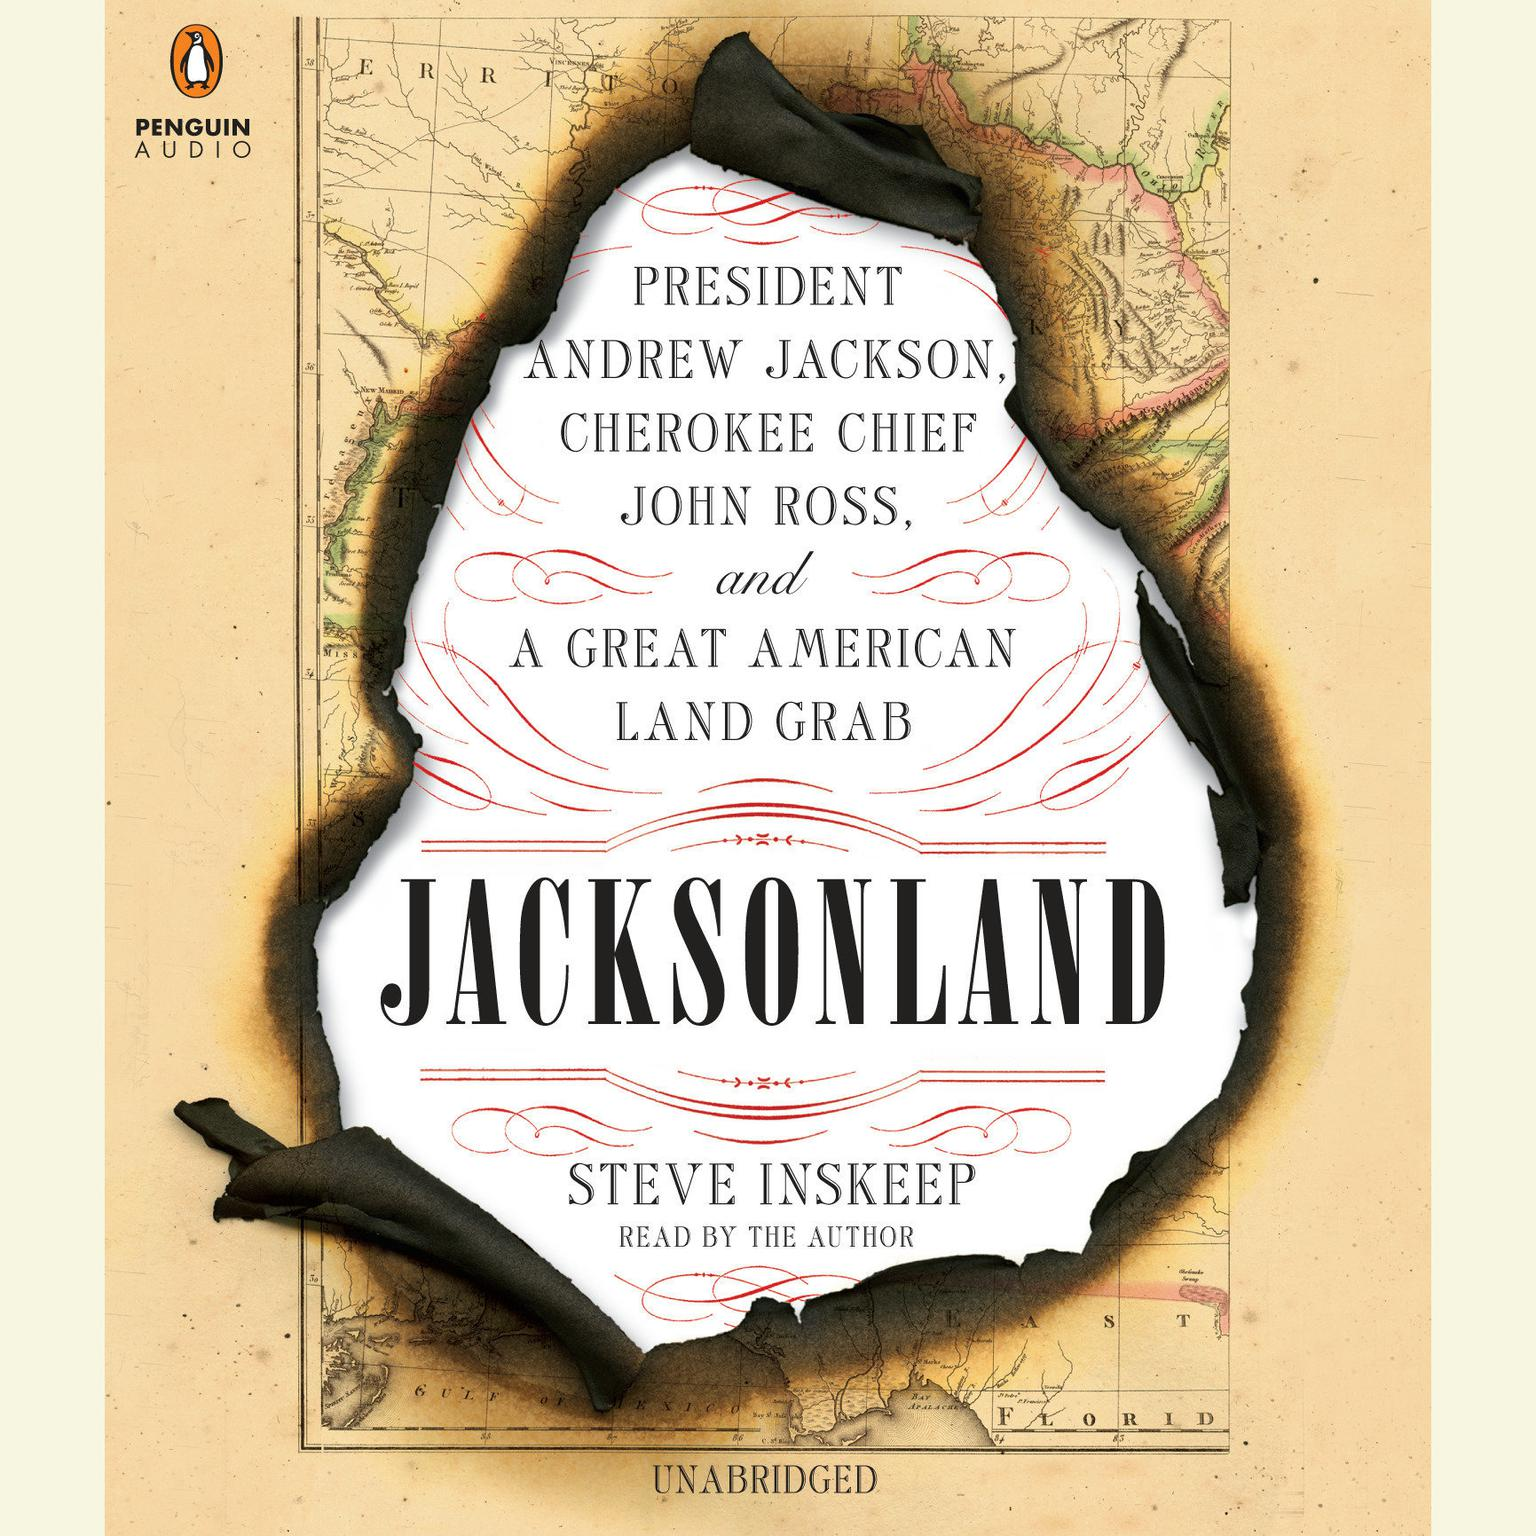 Printable Jacksonland: President Andrew Jackson, Cherokee Chief John Ross, and a Great American Land Gr ab Audiobook Cover Art